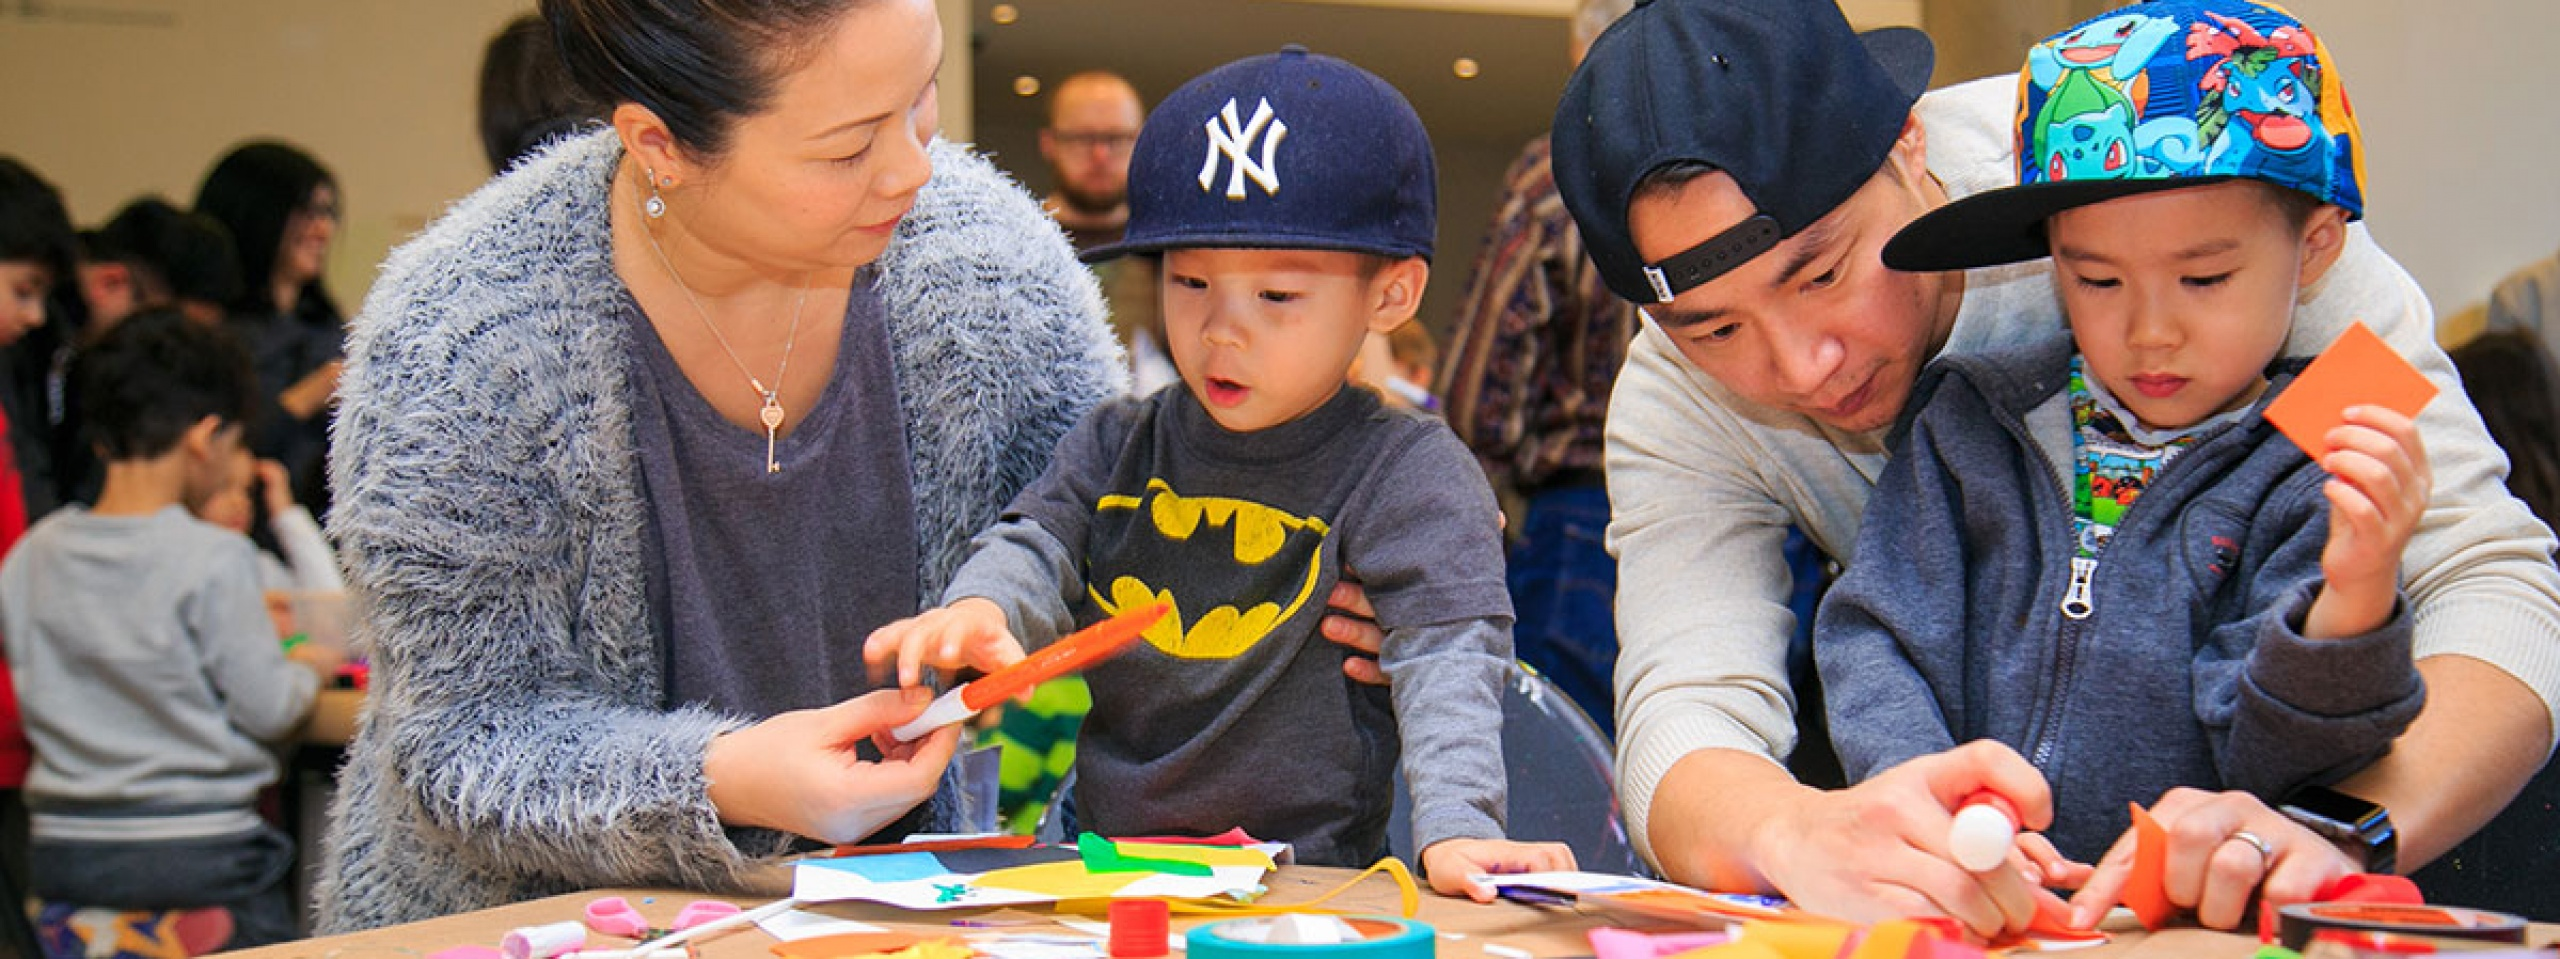 Parents help their kids with crafts at the AGO.